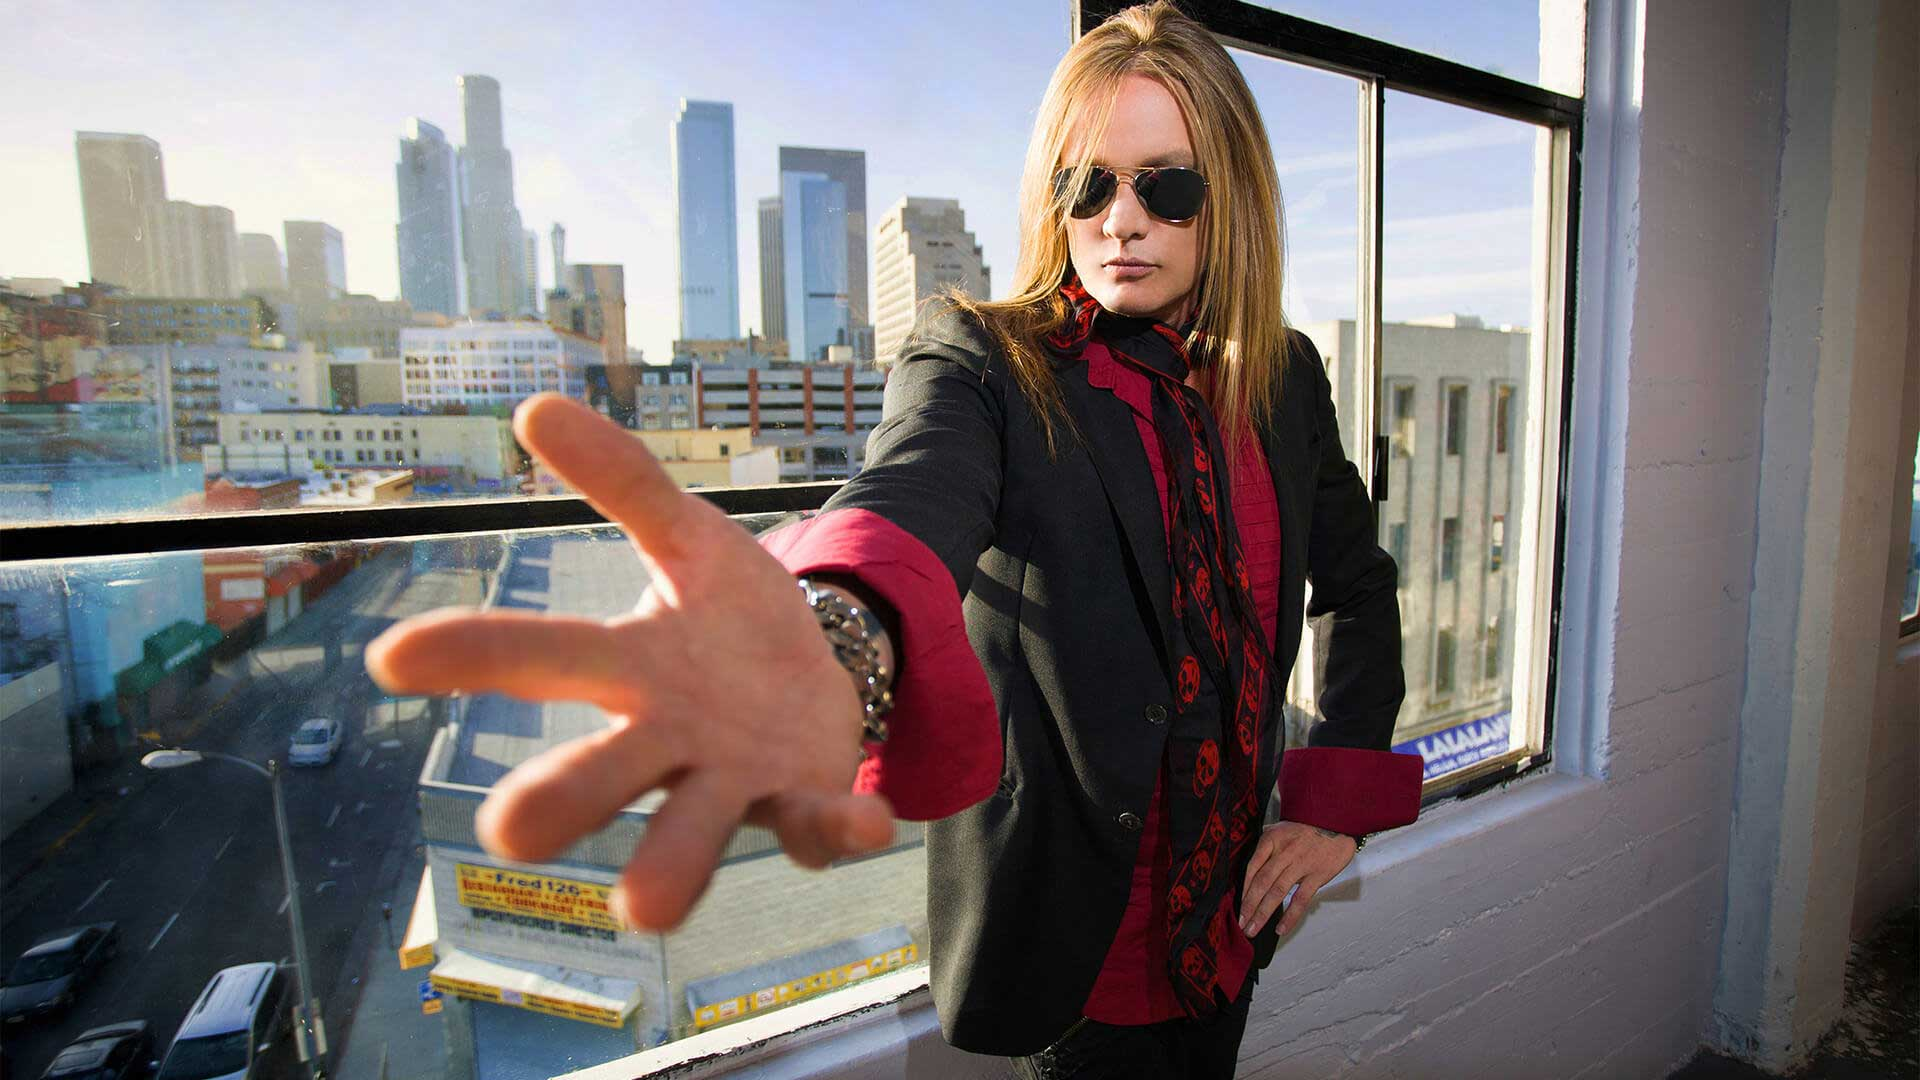 From a window overlooking a cityscape, frontman Sebastian Bach reaches out to beckon rock fans to his Paramount concert.